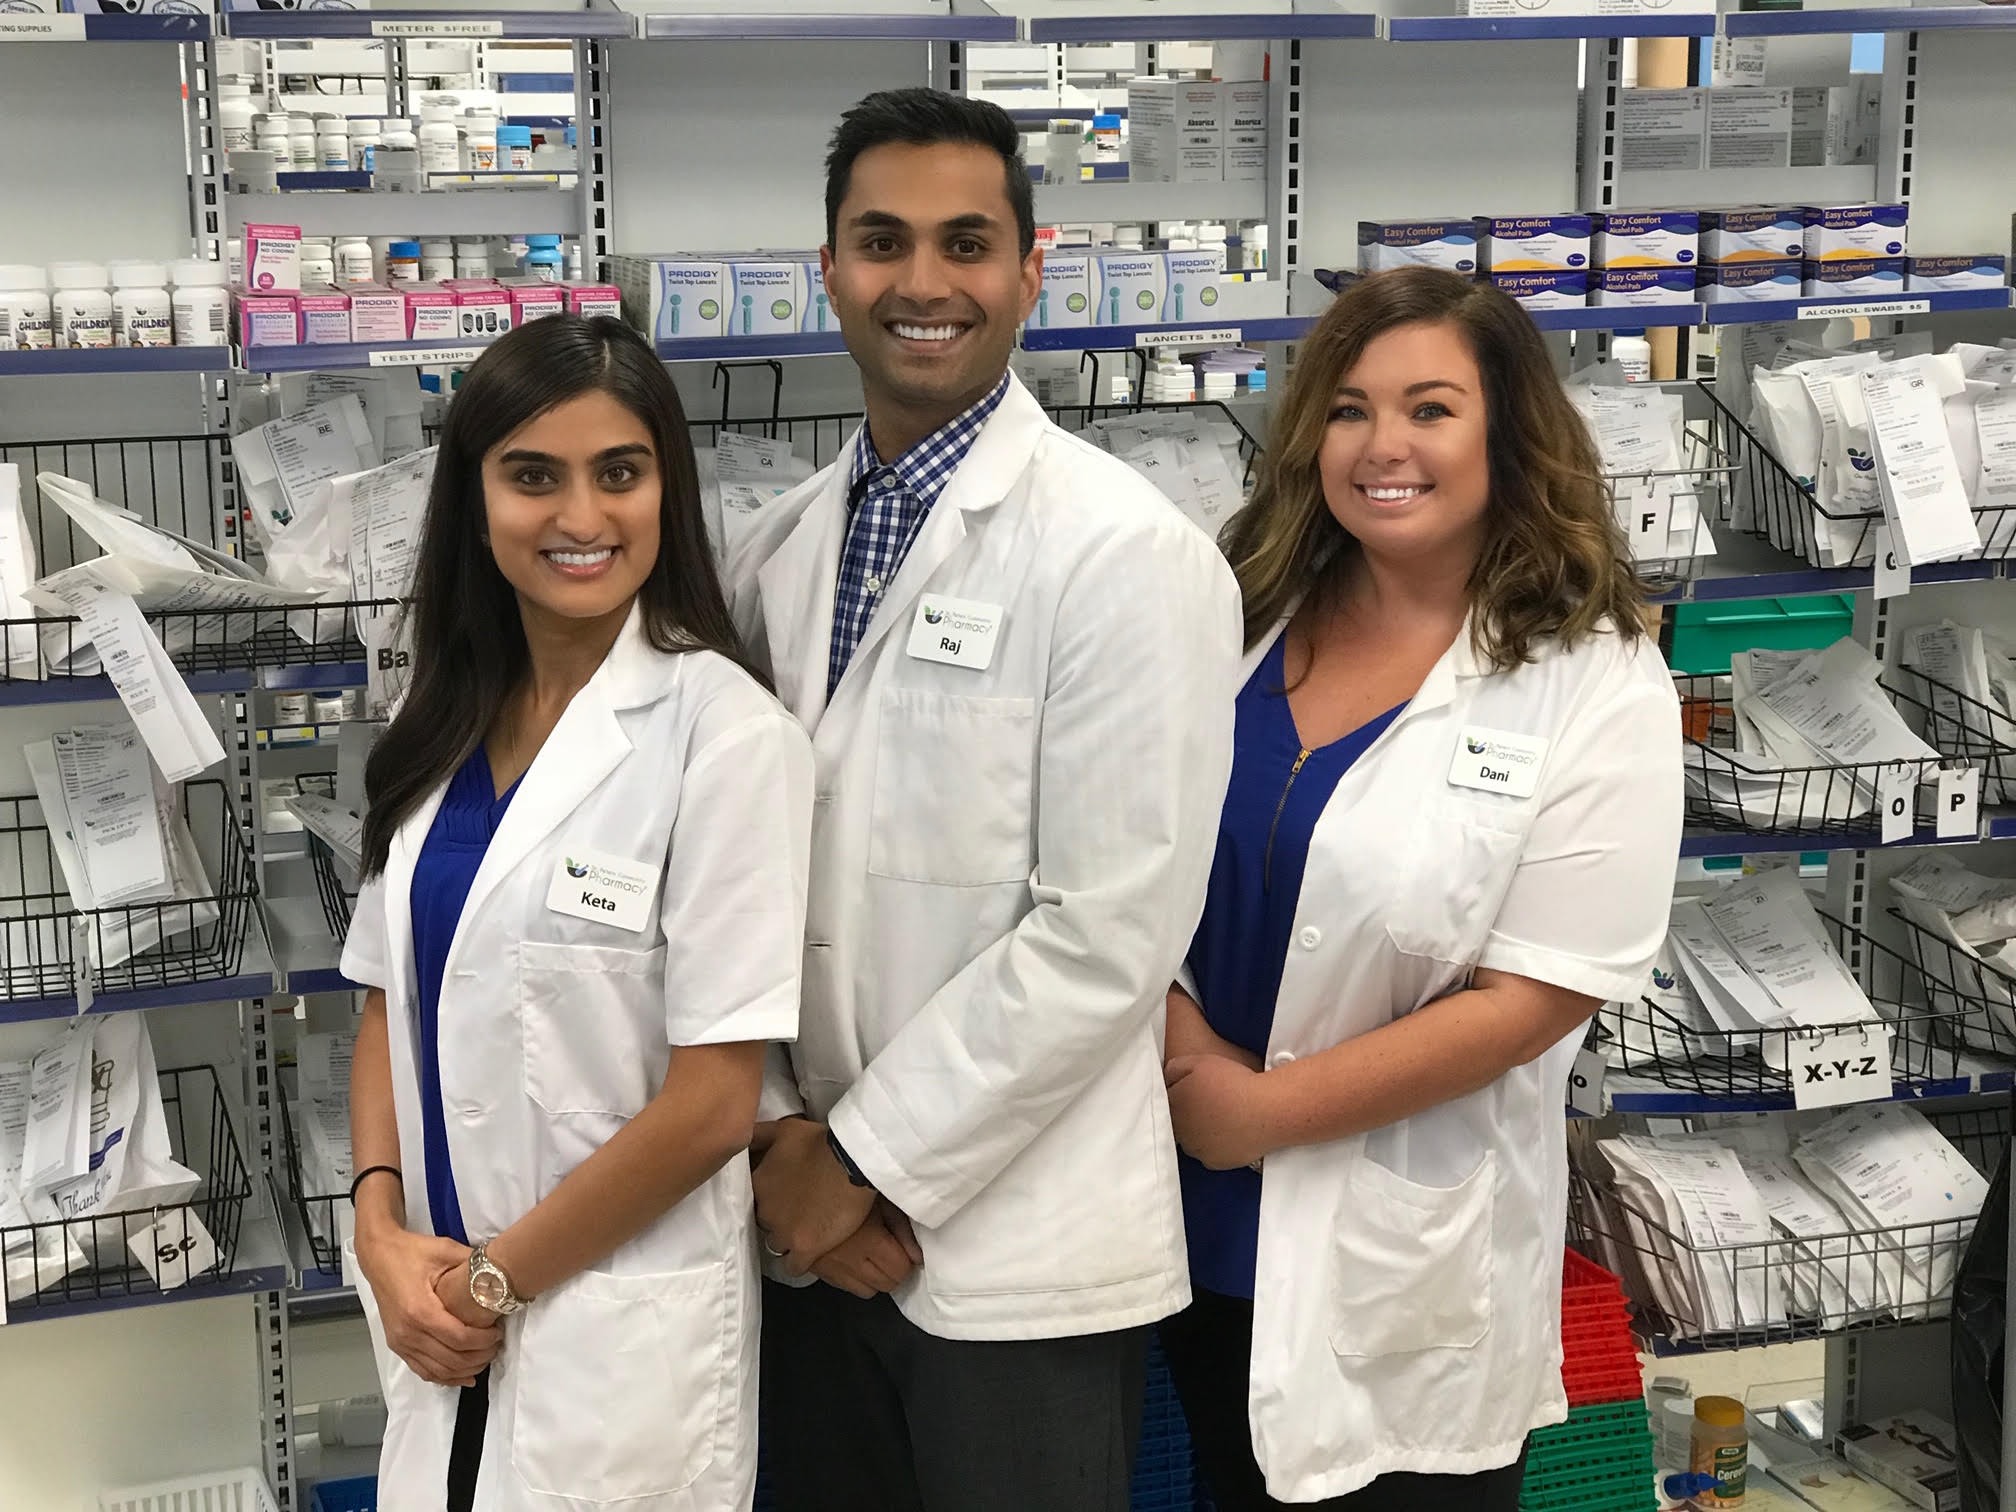 Saint Peters Community Pharmacy reviews | 4885 Mexico Rd - Saint Peters MO